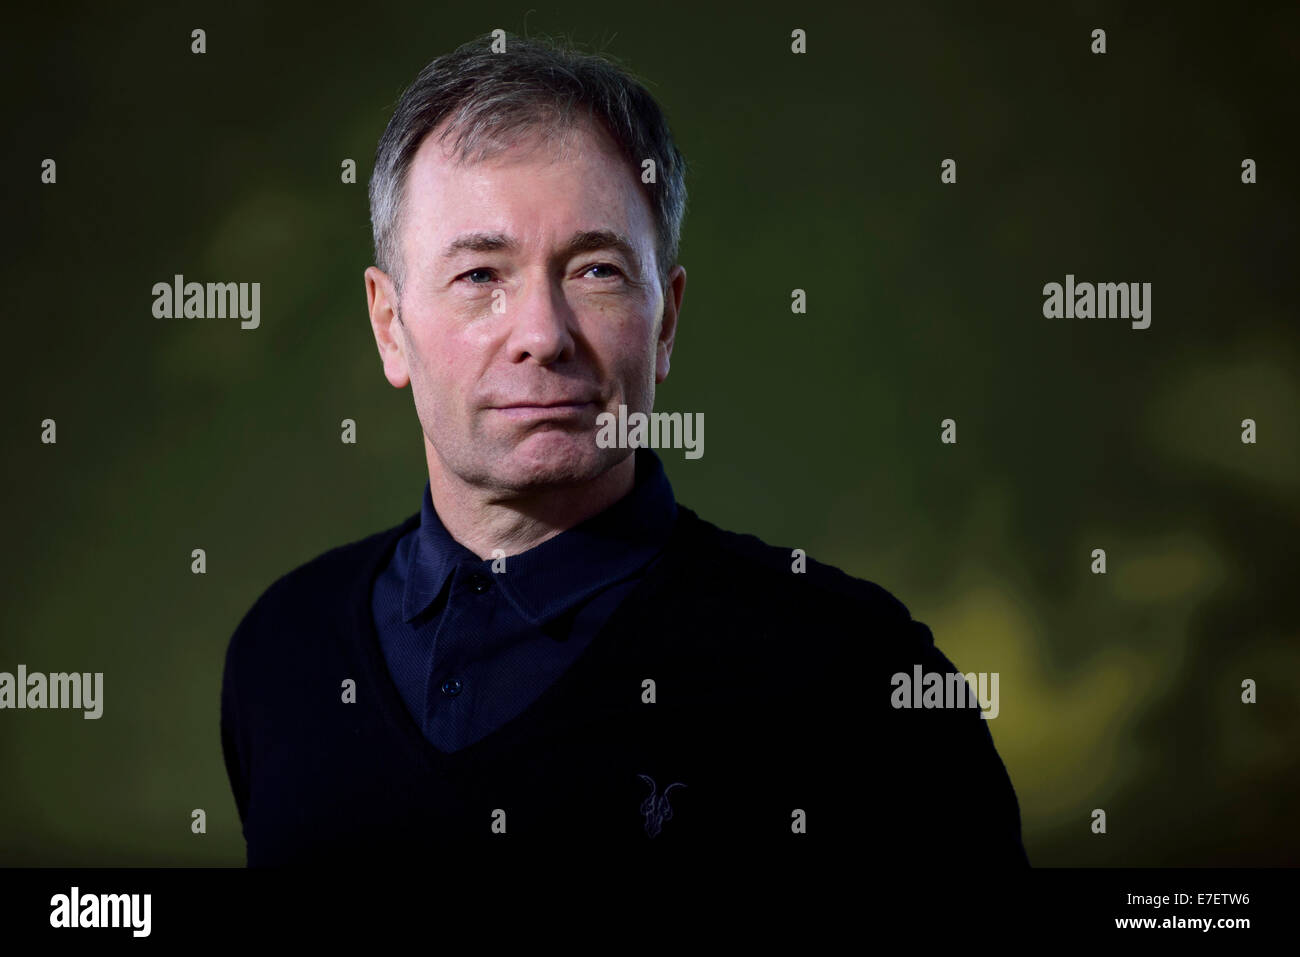 British journalist broadcaster and author Tony Parsons appears at the Edinburgh International Book Festival. - Stock Image